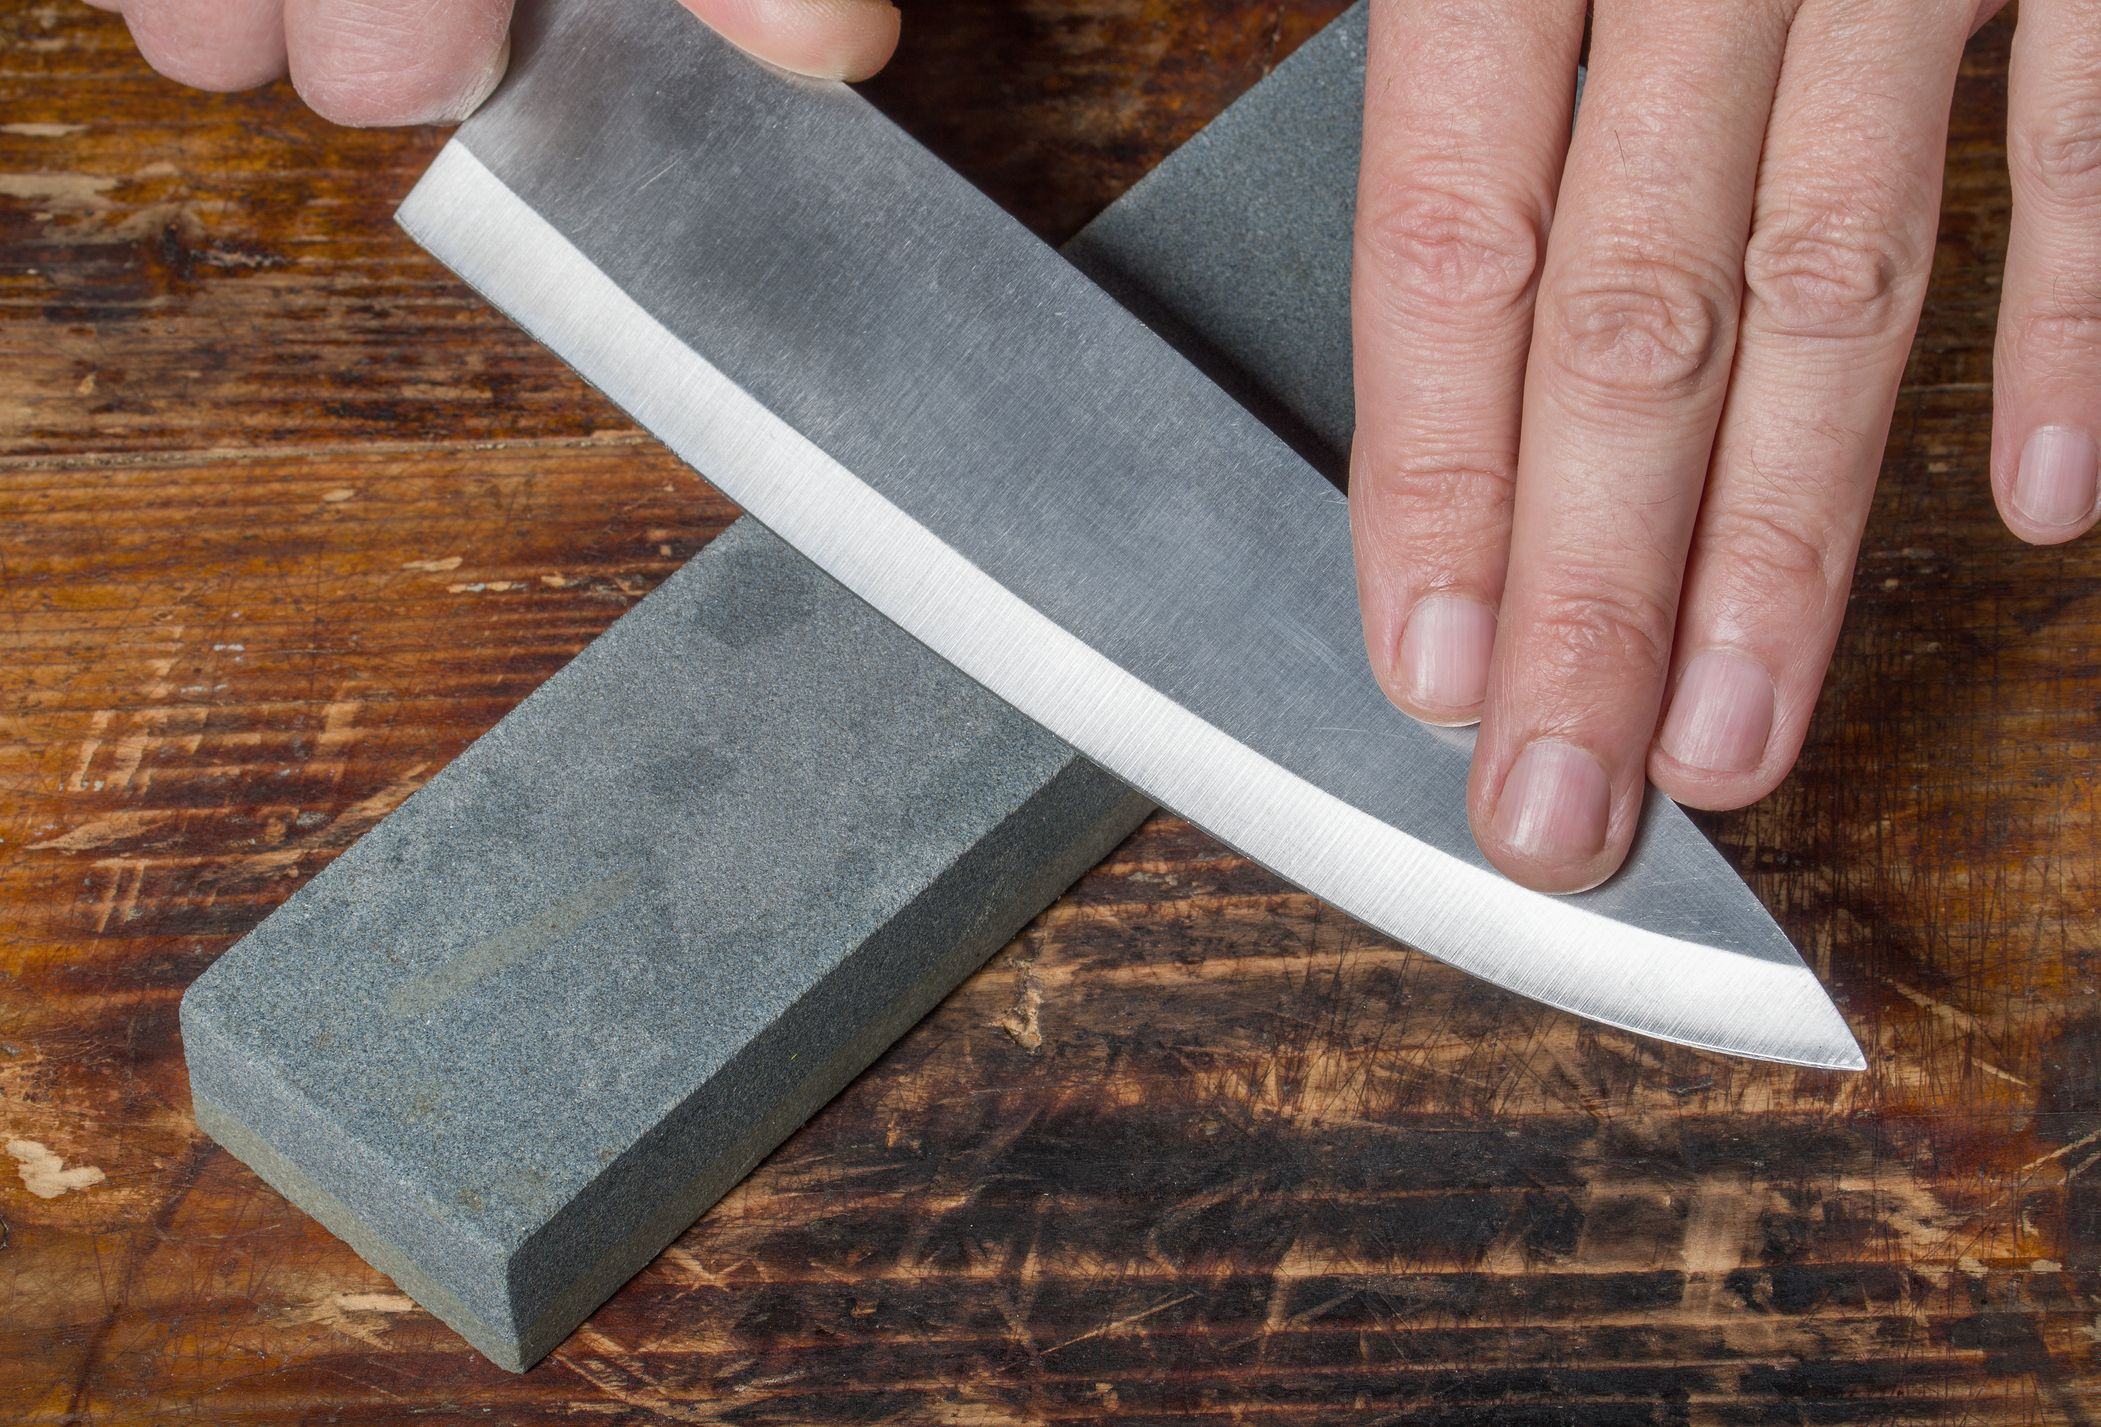 japanese kitchen knife install island these handmade knives are on sale for over 90 off